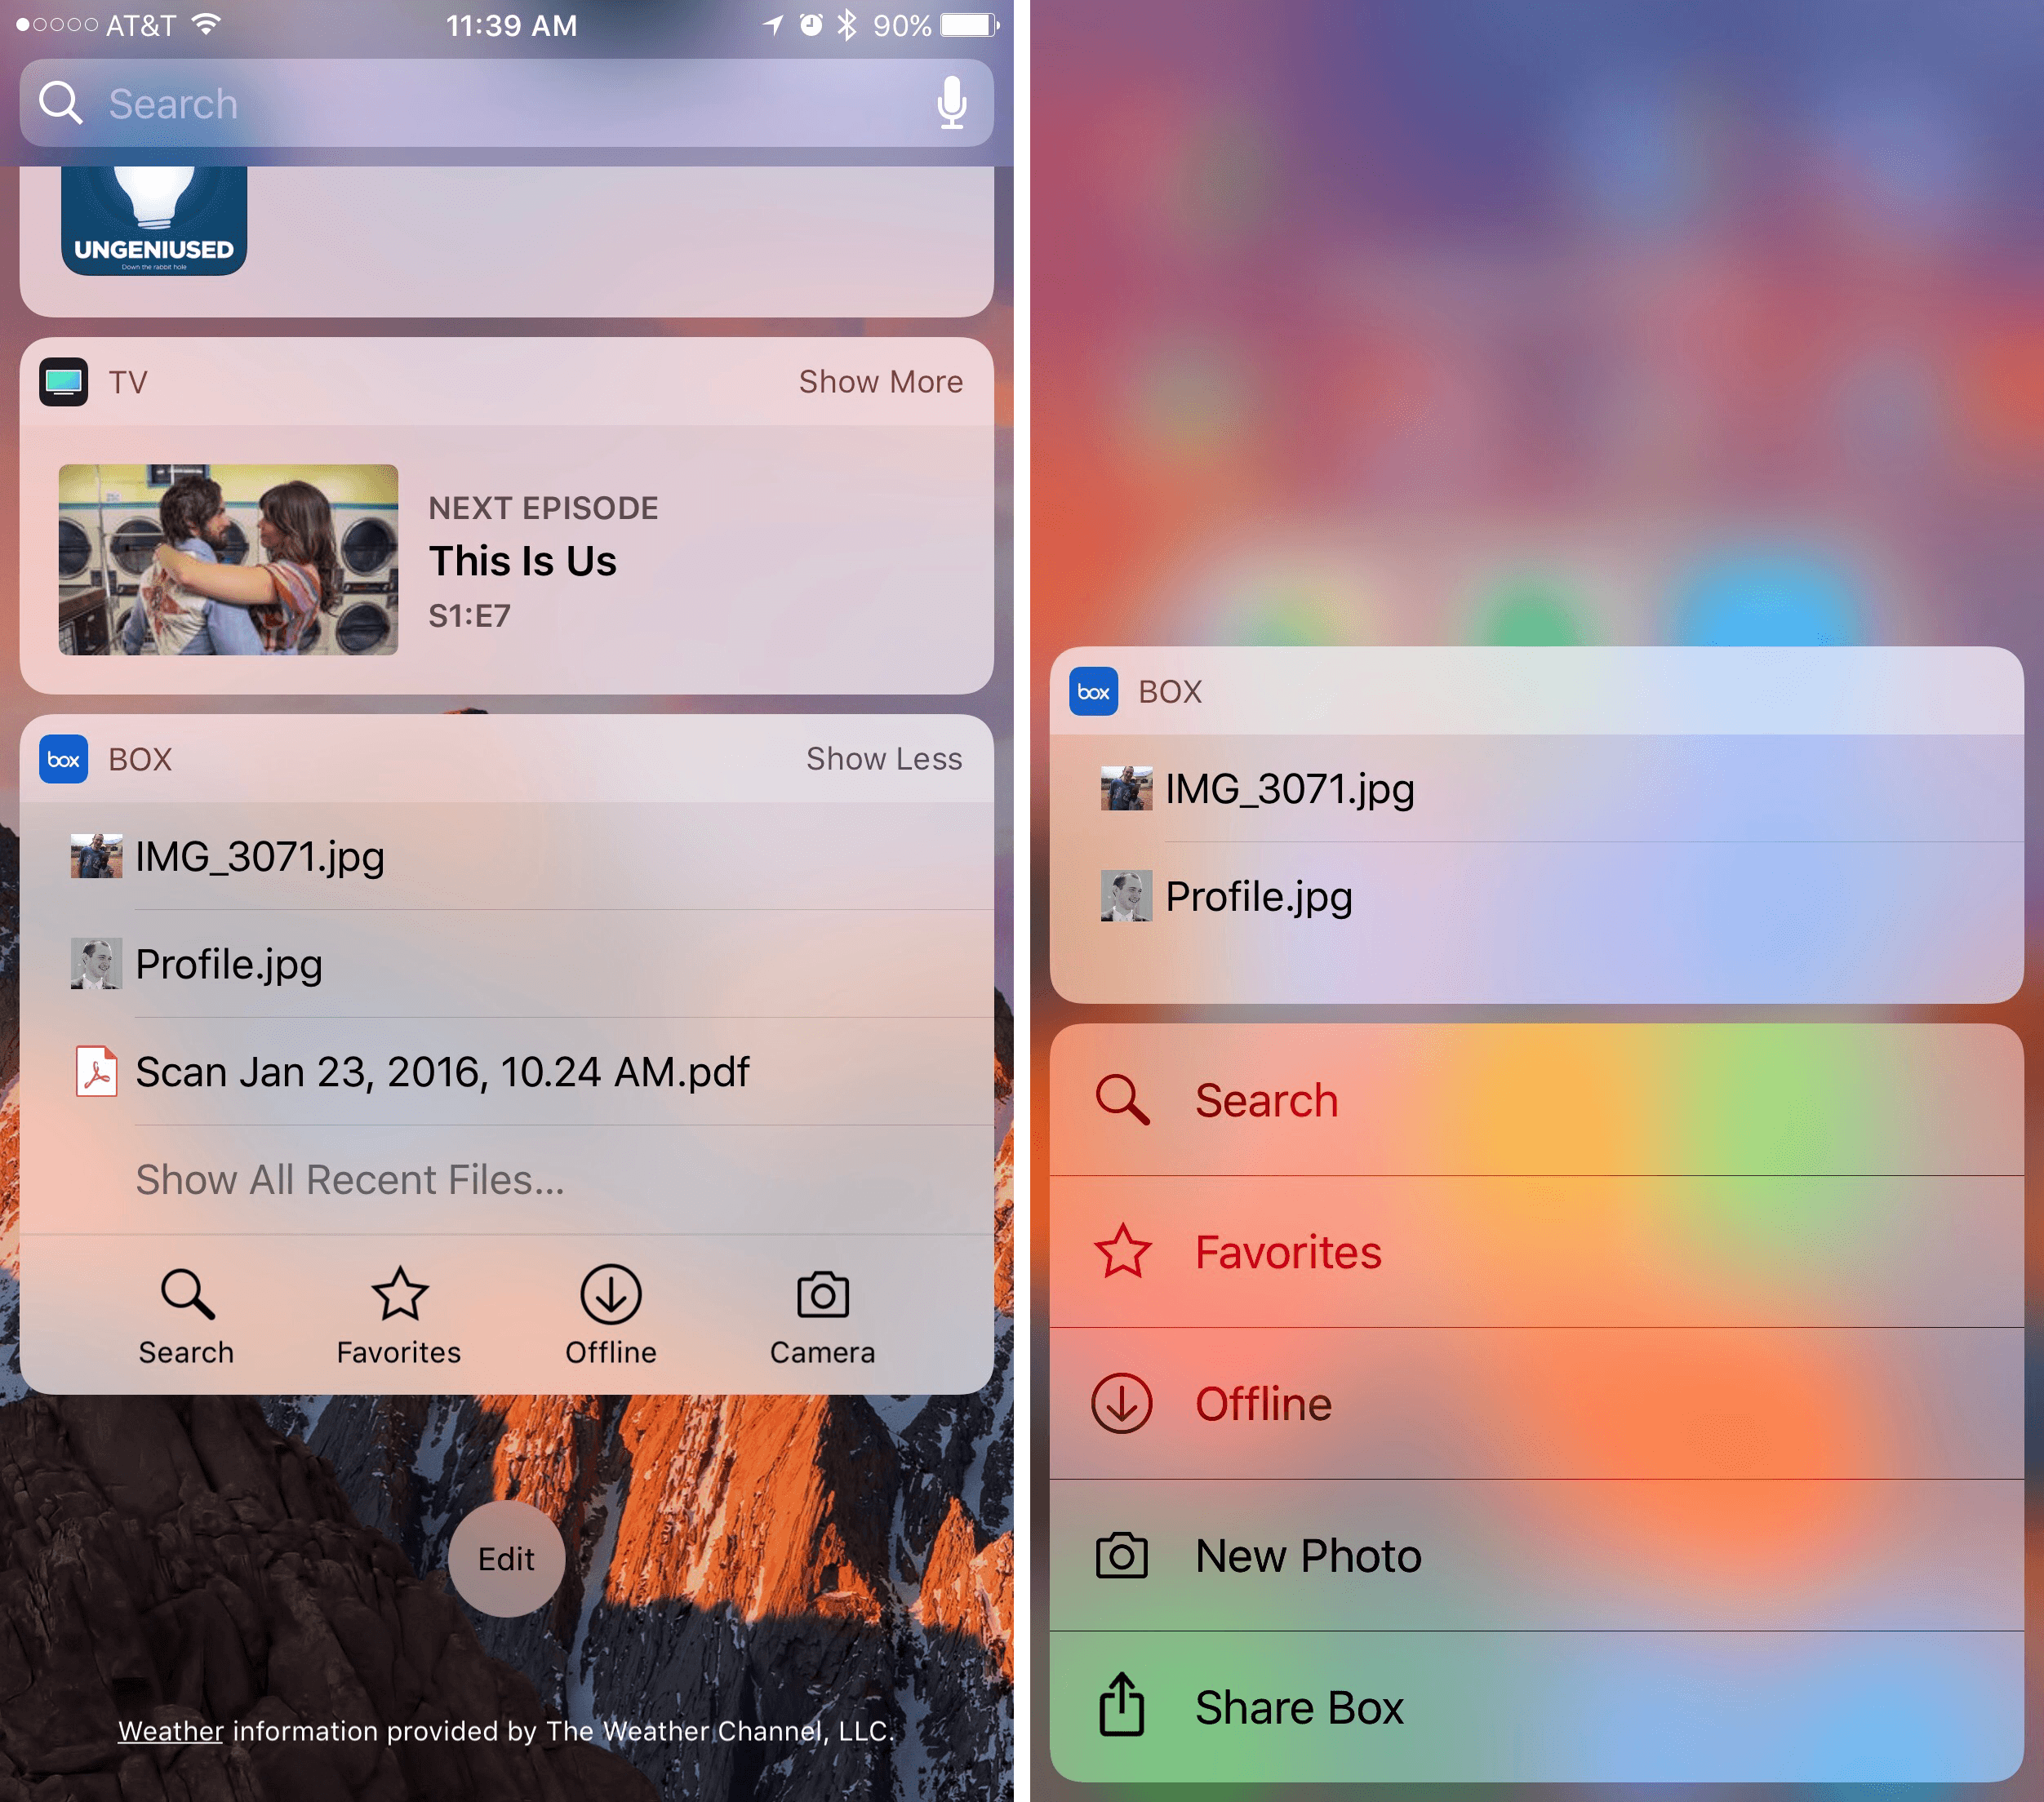 Quickly accessing files can also happen through Box's widget